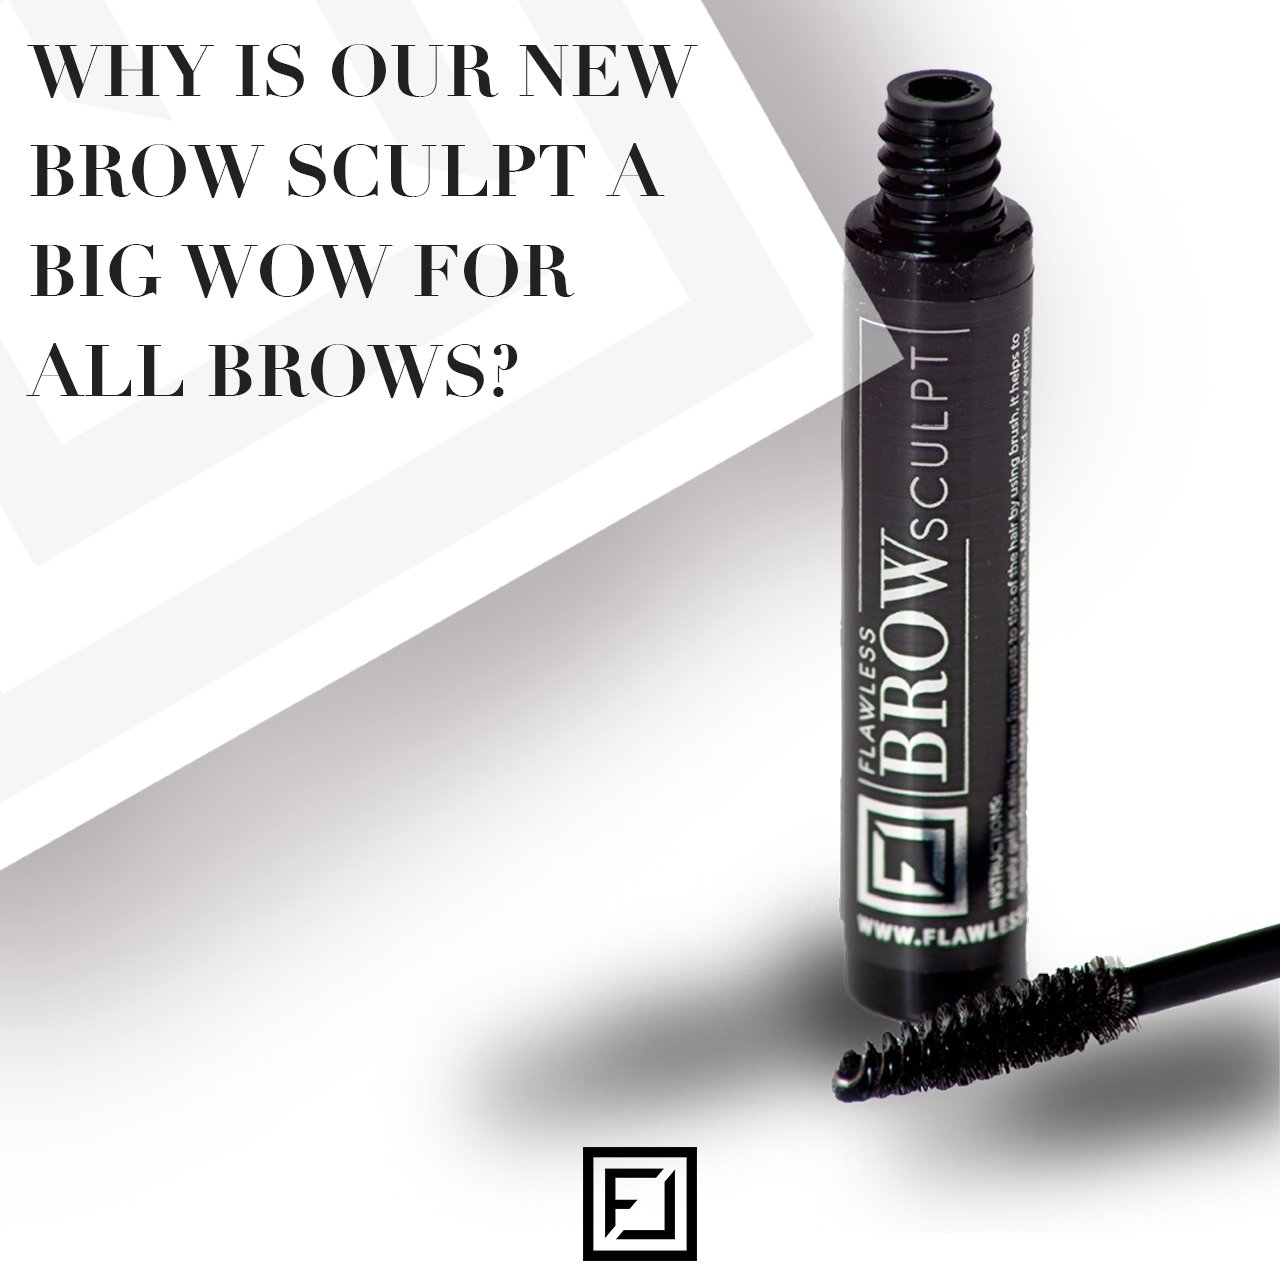 Why is our new Brow Sculpt a BIG WOW for ALL brows?